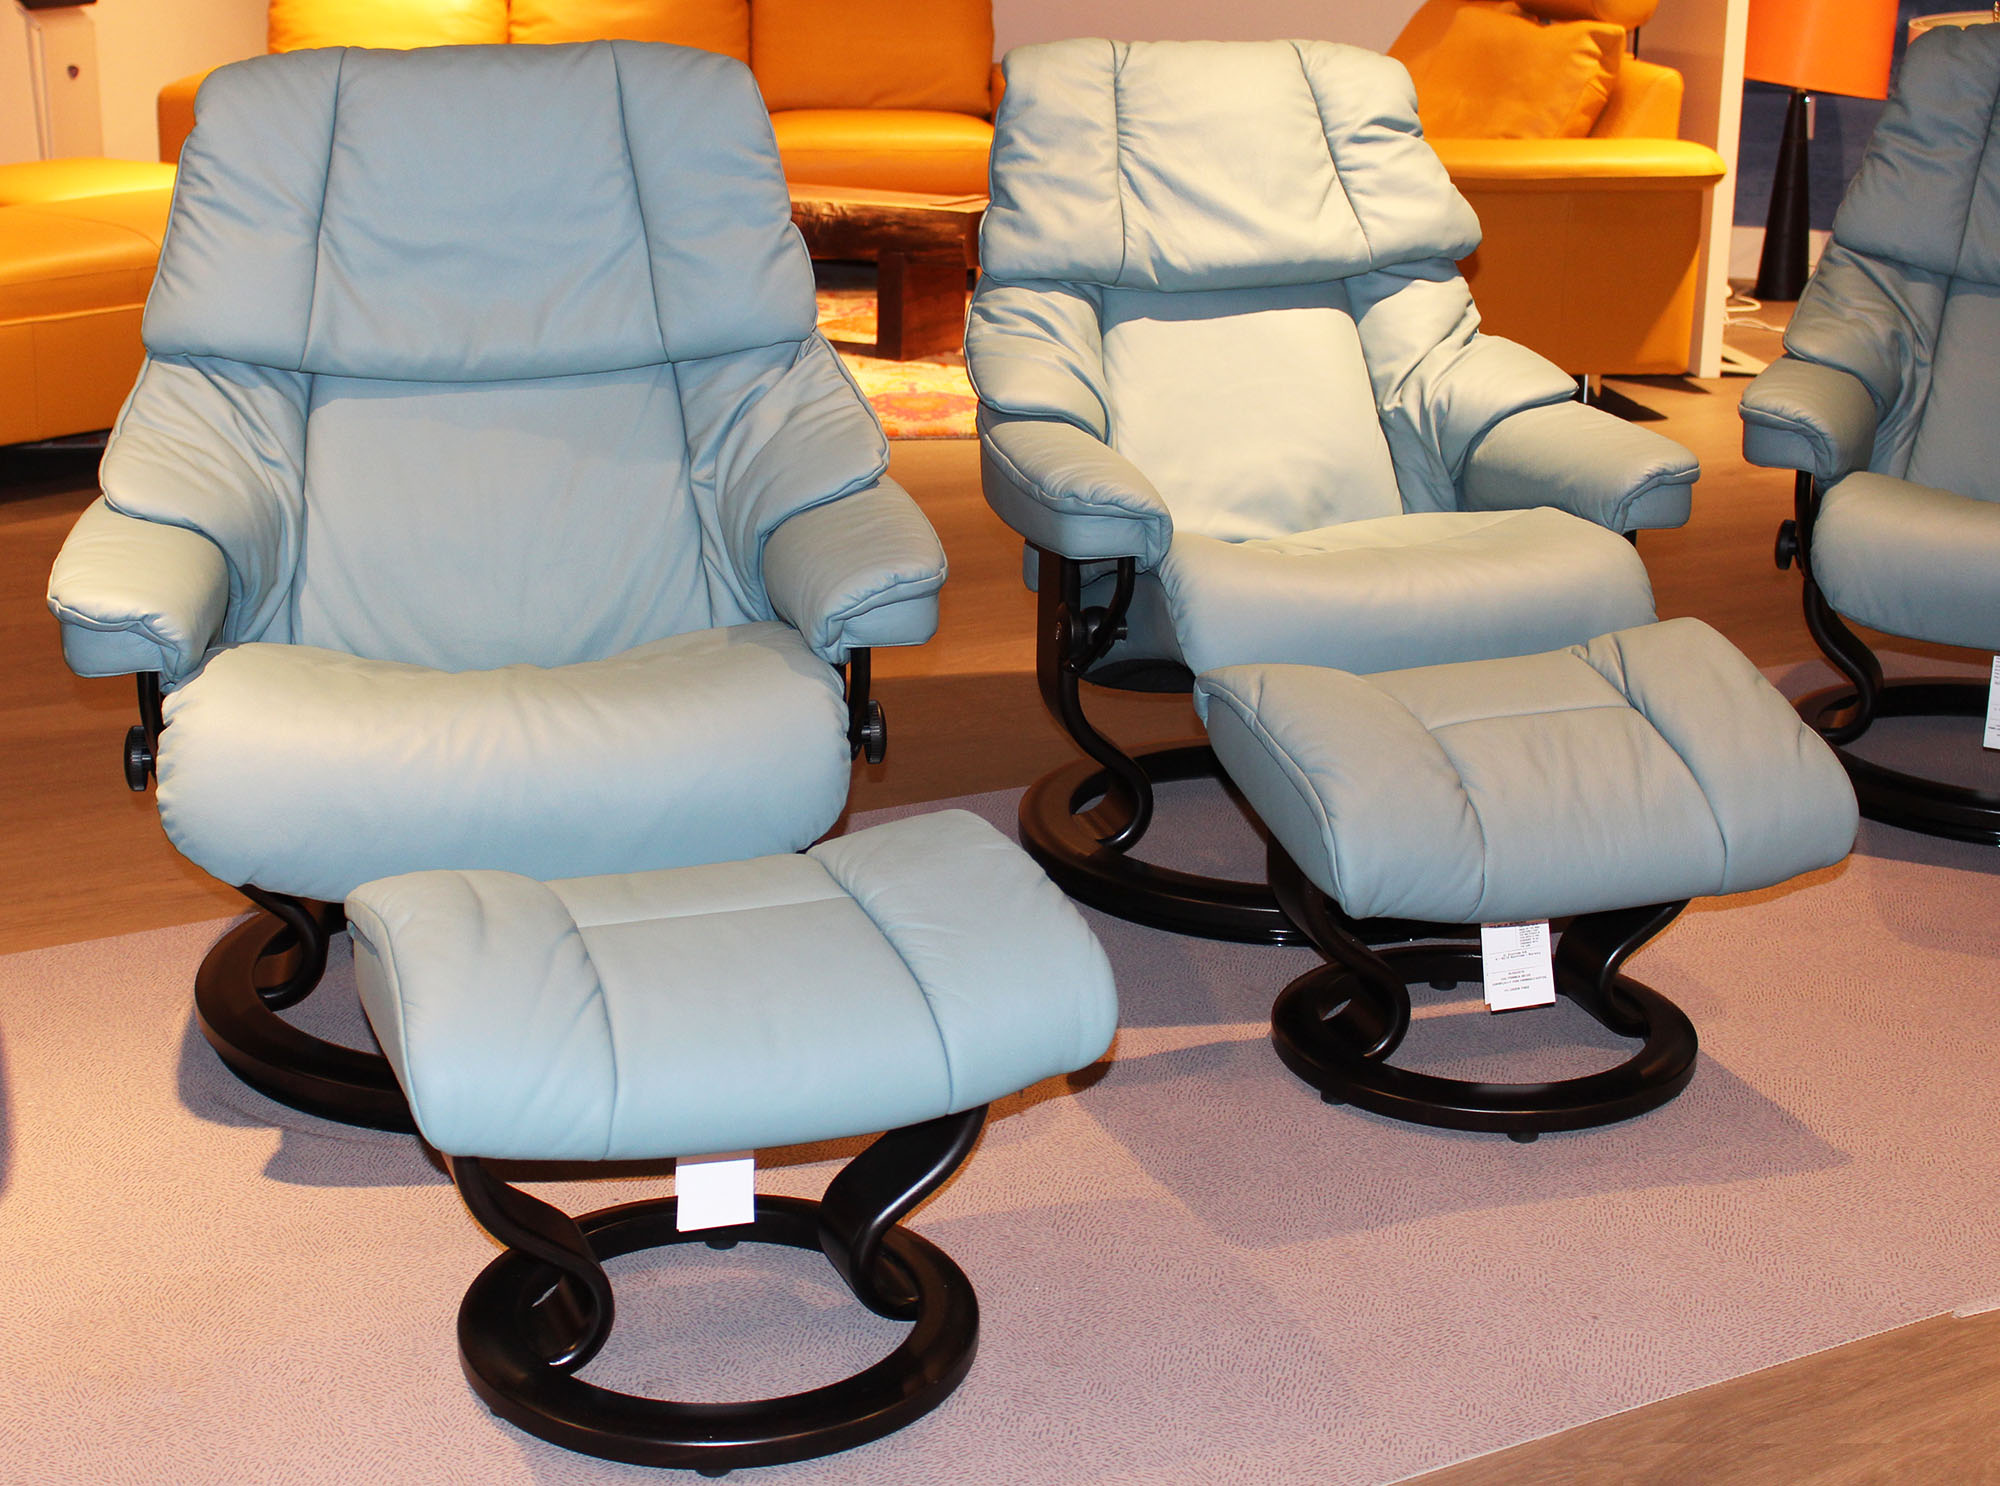 Stressless Paloma Stressless Paloma Aqua Green 09492 Leather By Ekornes Stressless